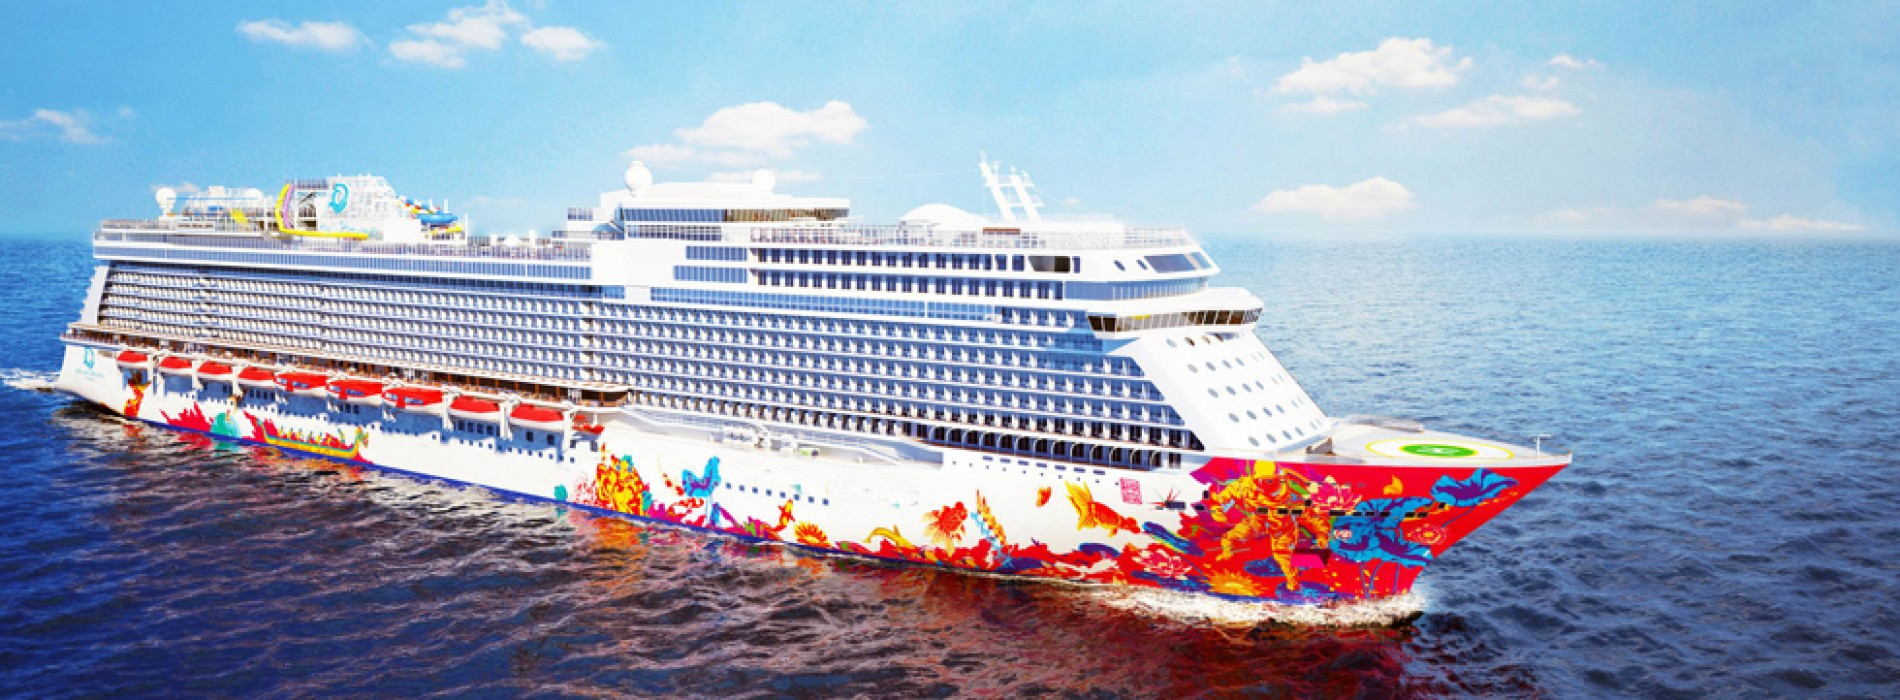 First Grand Cruise Angriya Started Off From Mumbai To Goa Price Begins From Rs 7500 W3buzz